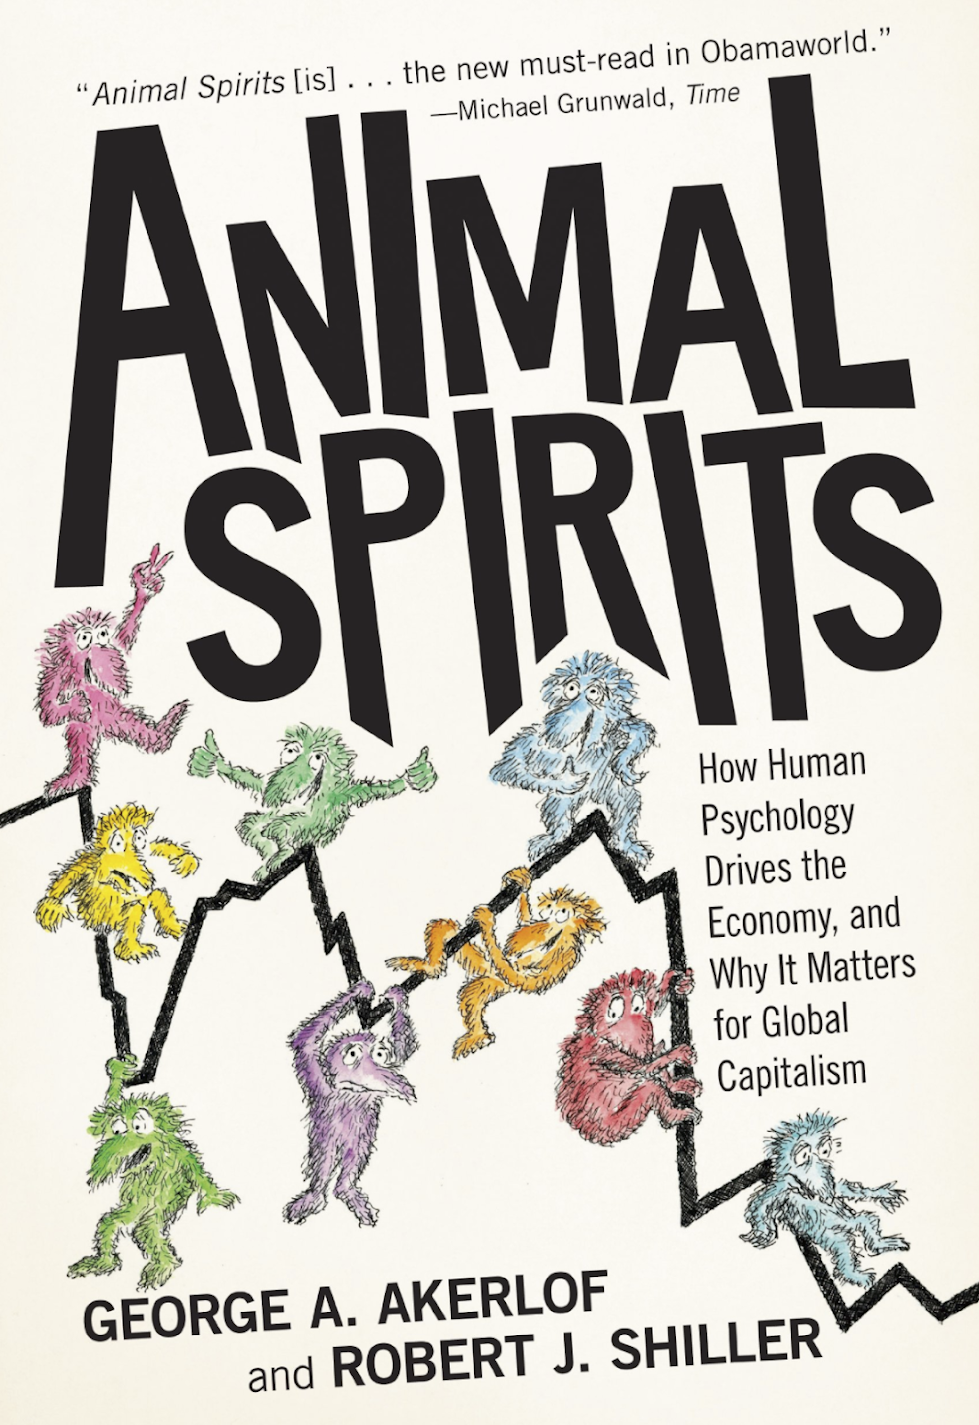 Animal Spirits - How Human Psychology Drives the Economy, and Why It Matters for Global Capitalism by George A. Akerlof and Robert J. Shiller